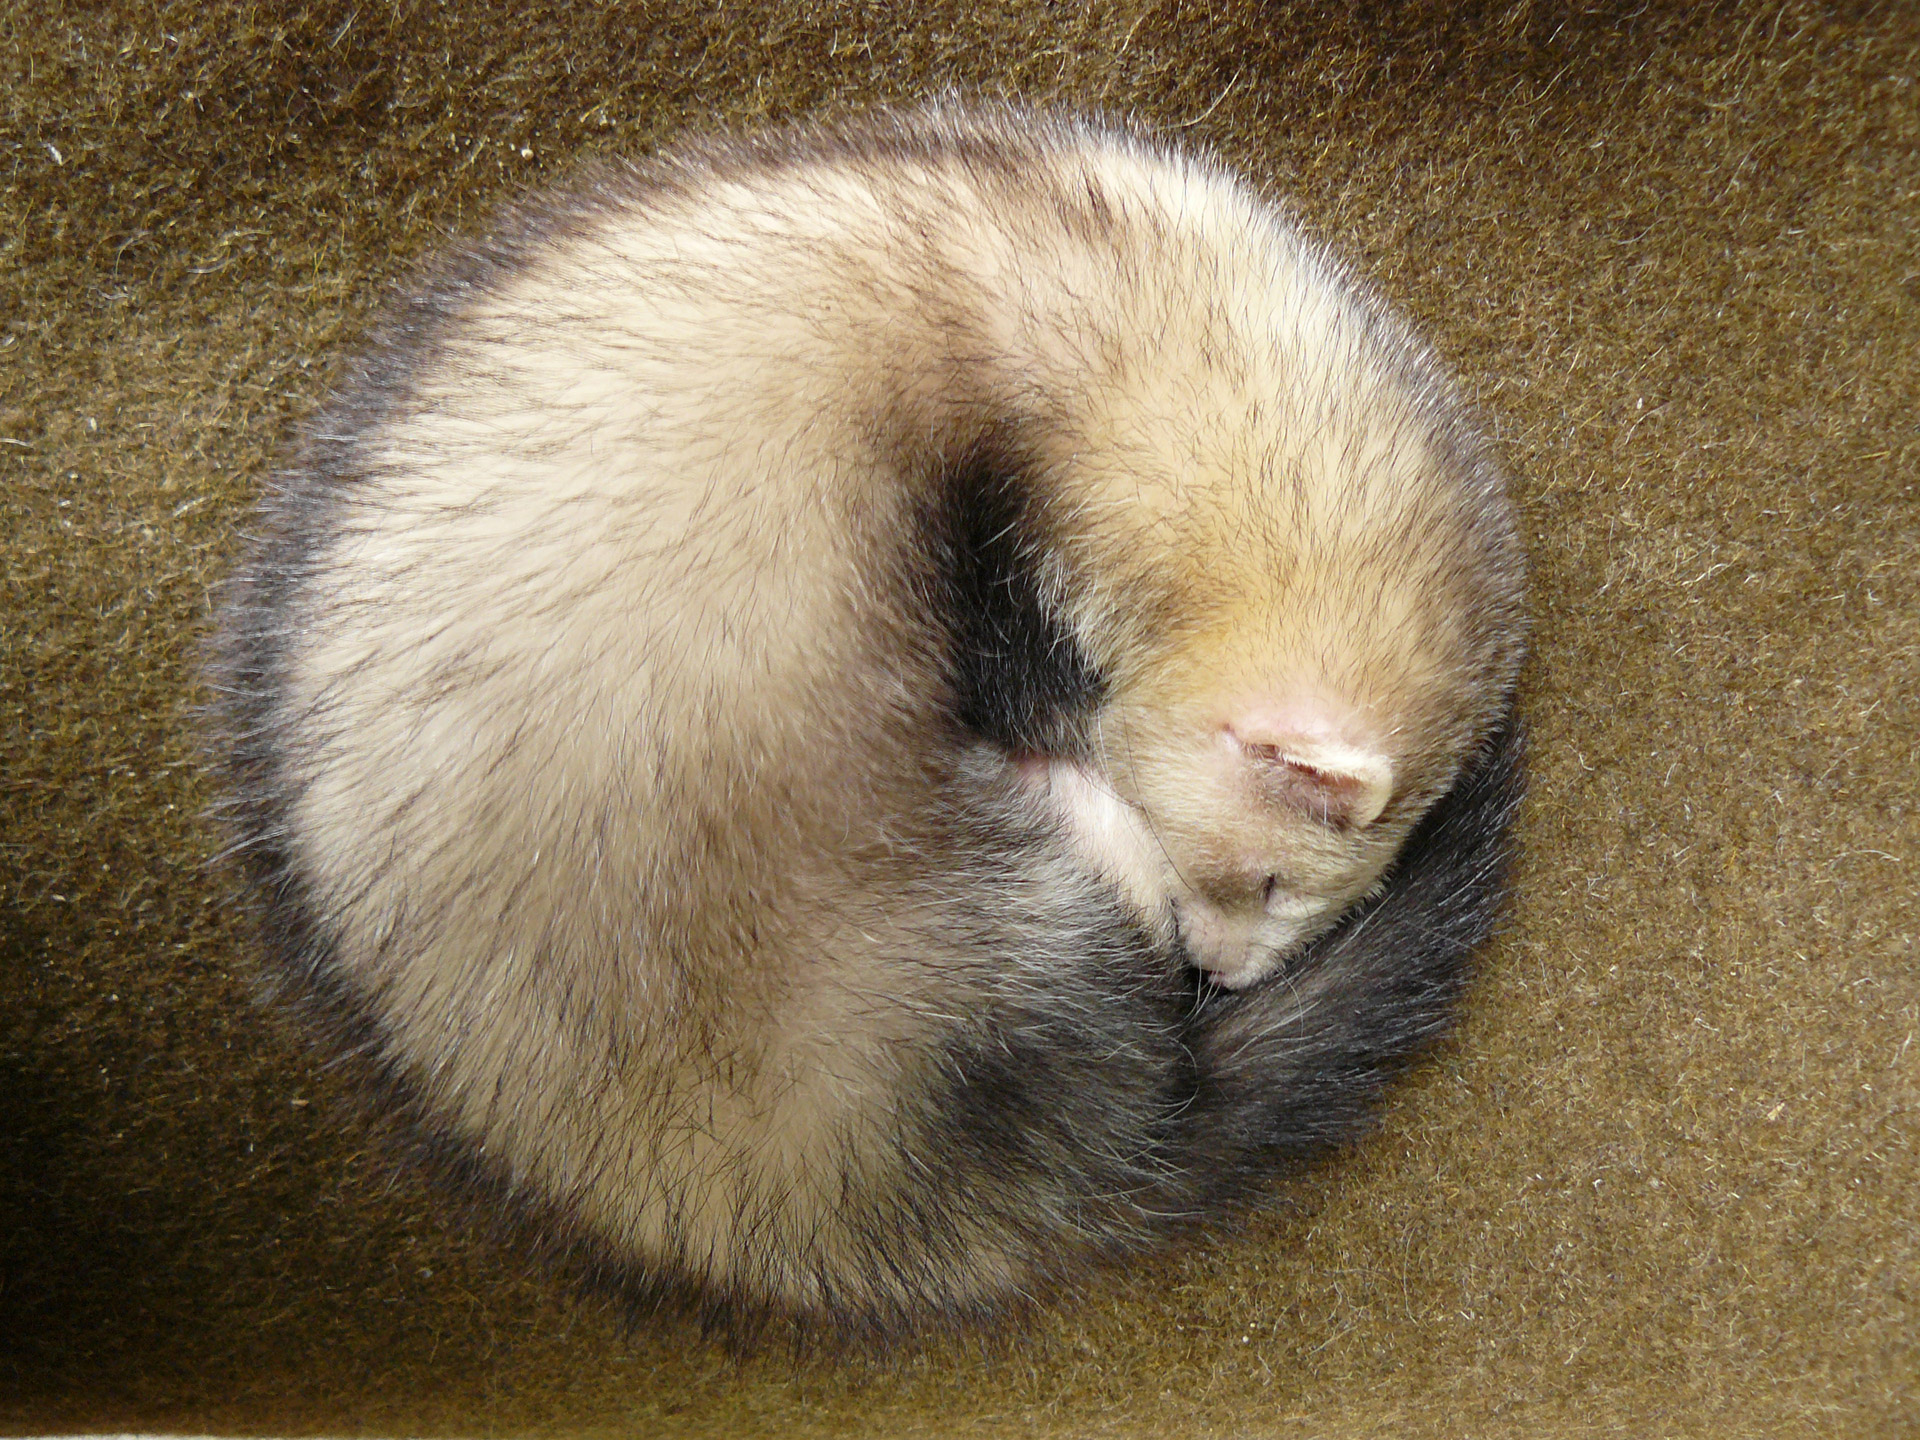 Ferret curled into a ball